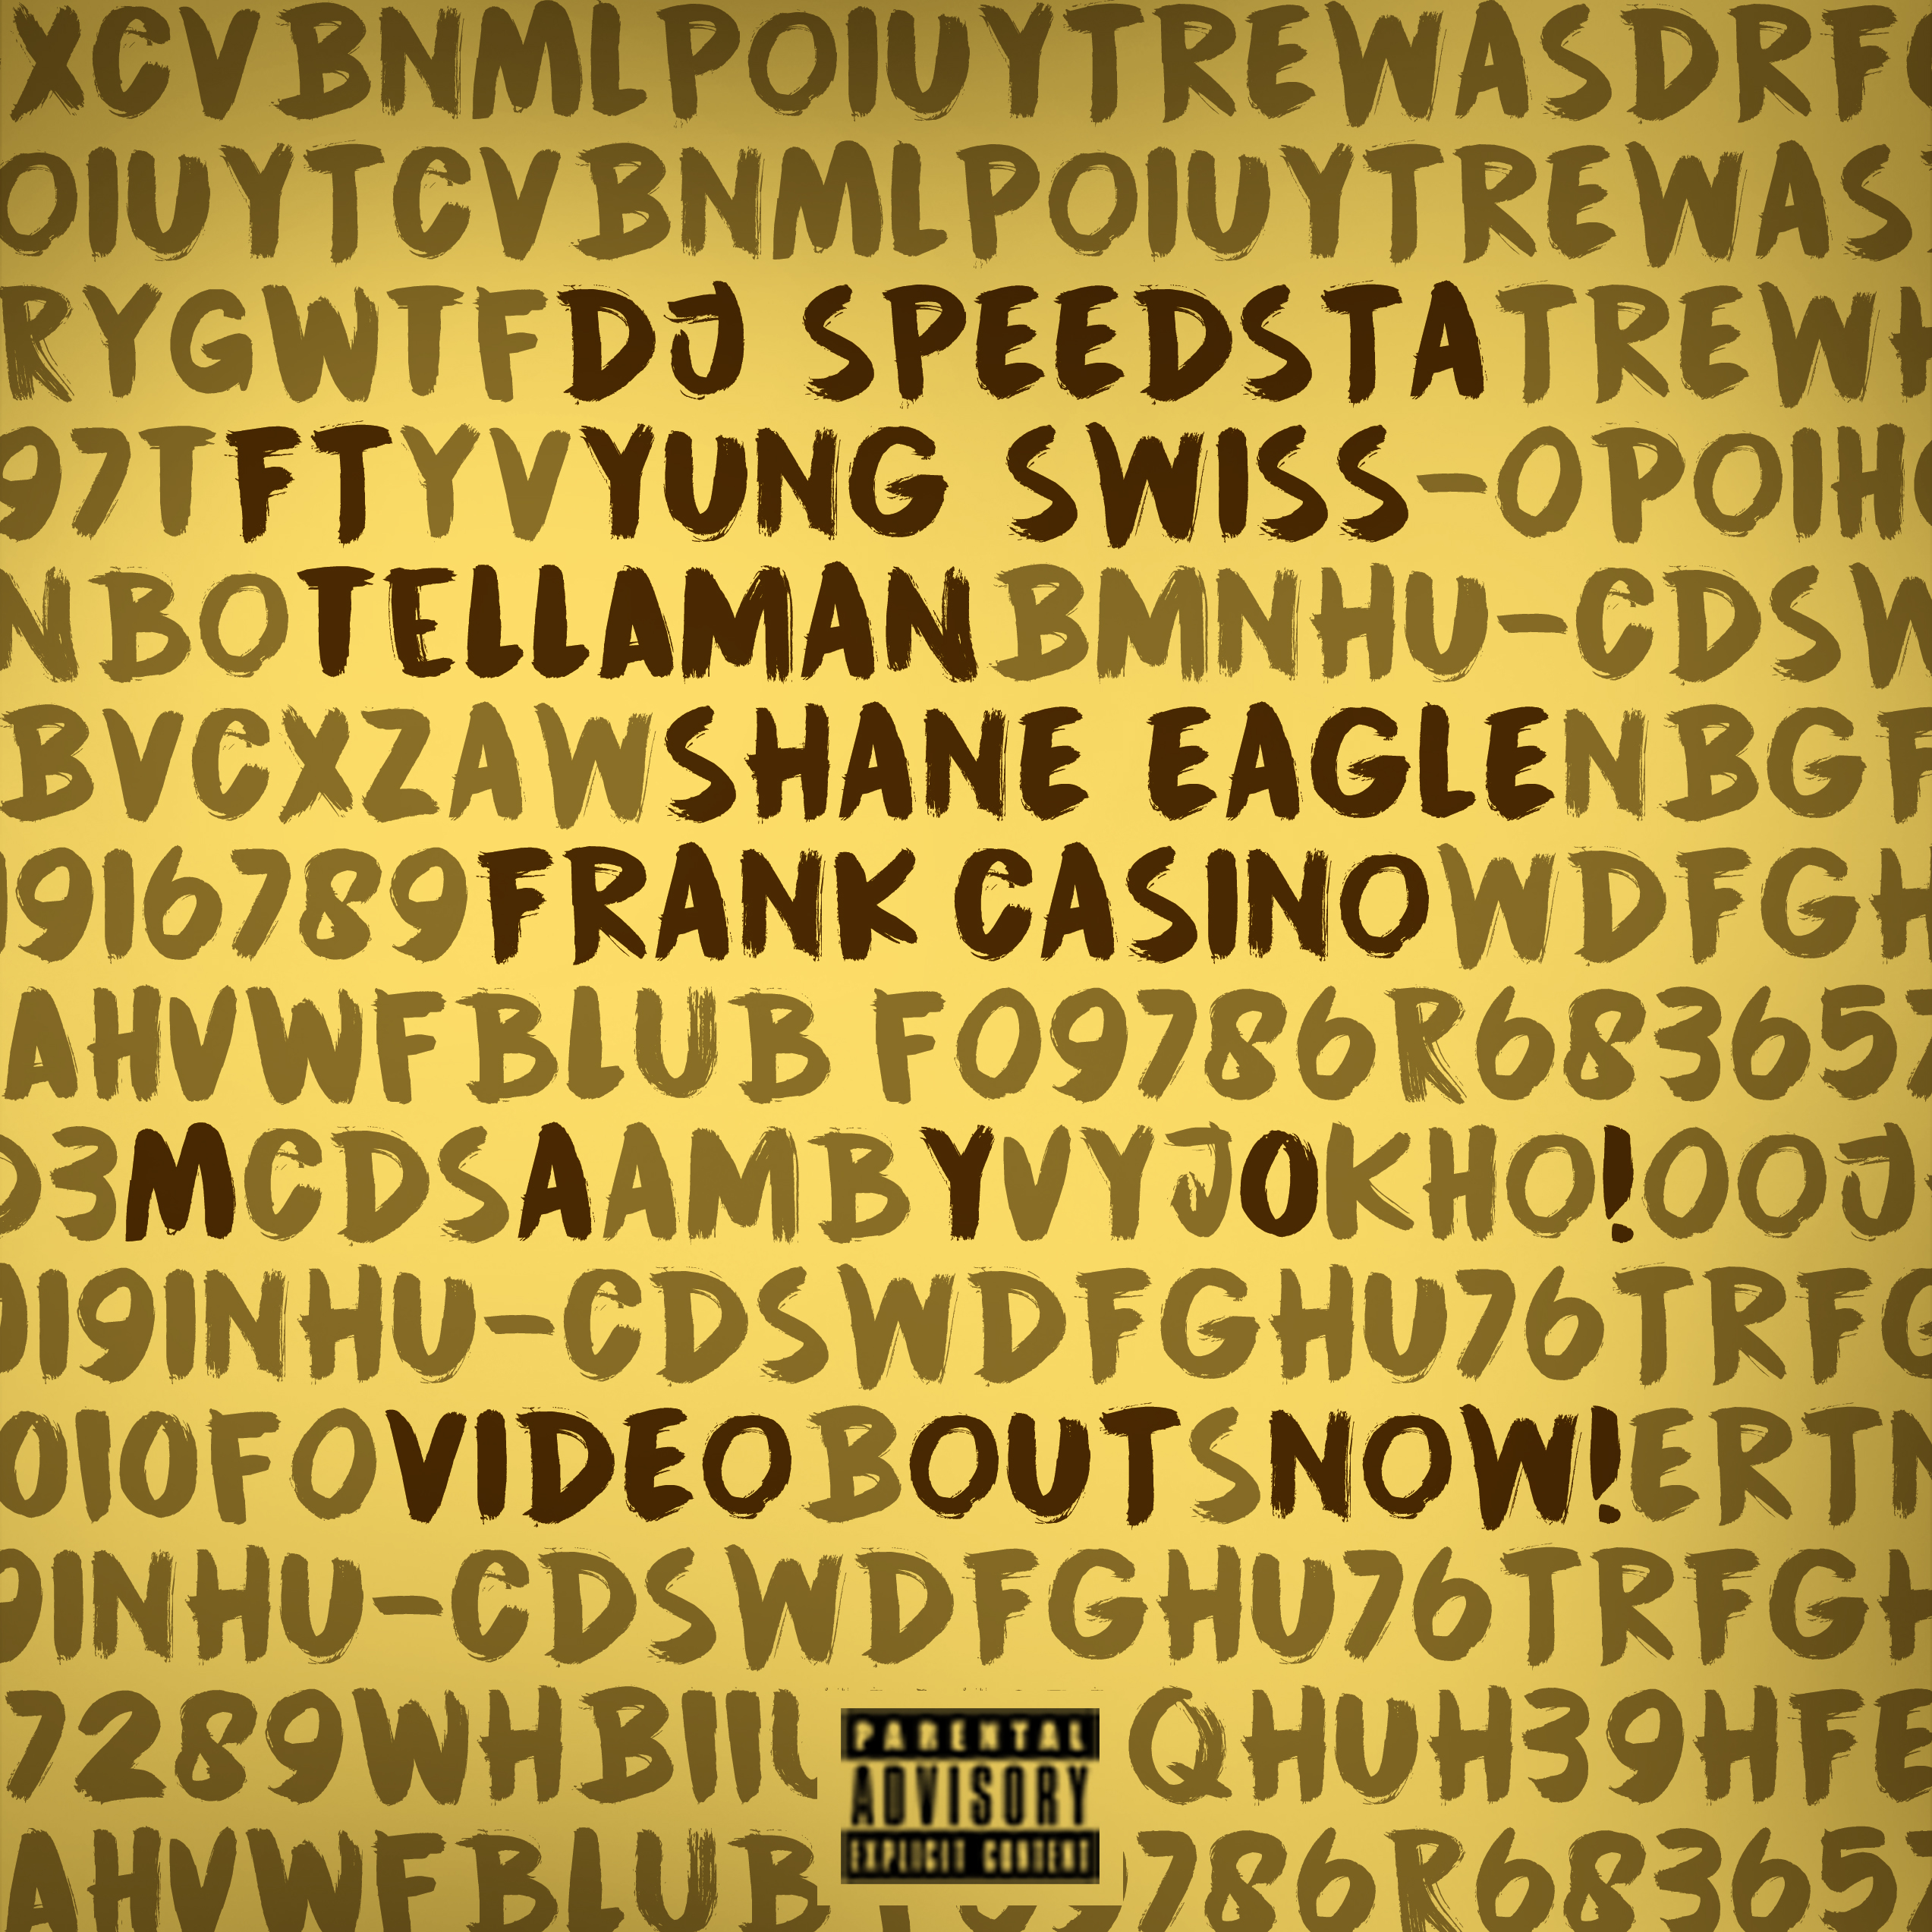 DJ Speedsta Drops New 'Mayo' Record Ft. Yung Swiss, Tellaman, Shane Eagle & Frank Casino [Listen] MAYO ART Video Out Now Fina Squarel